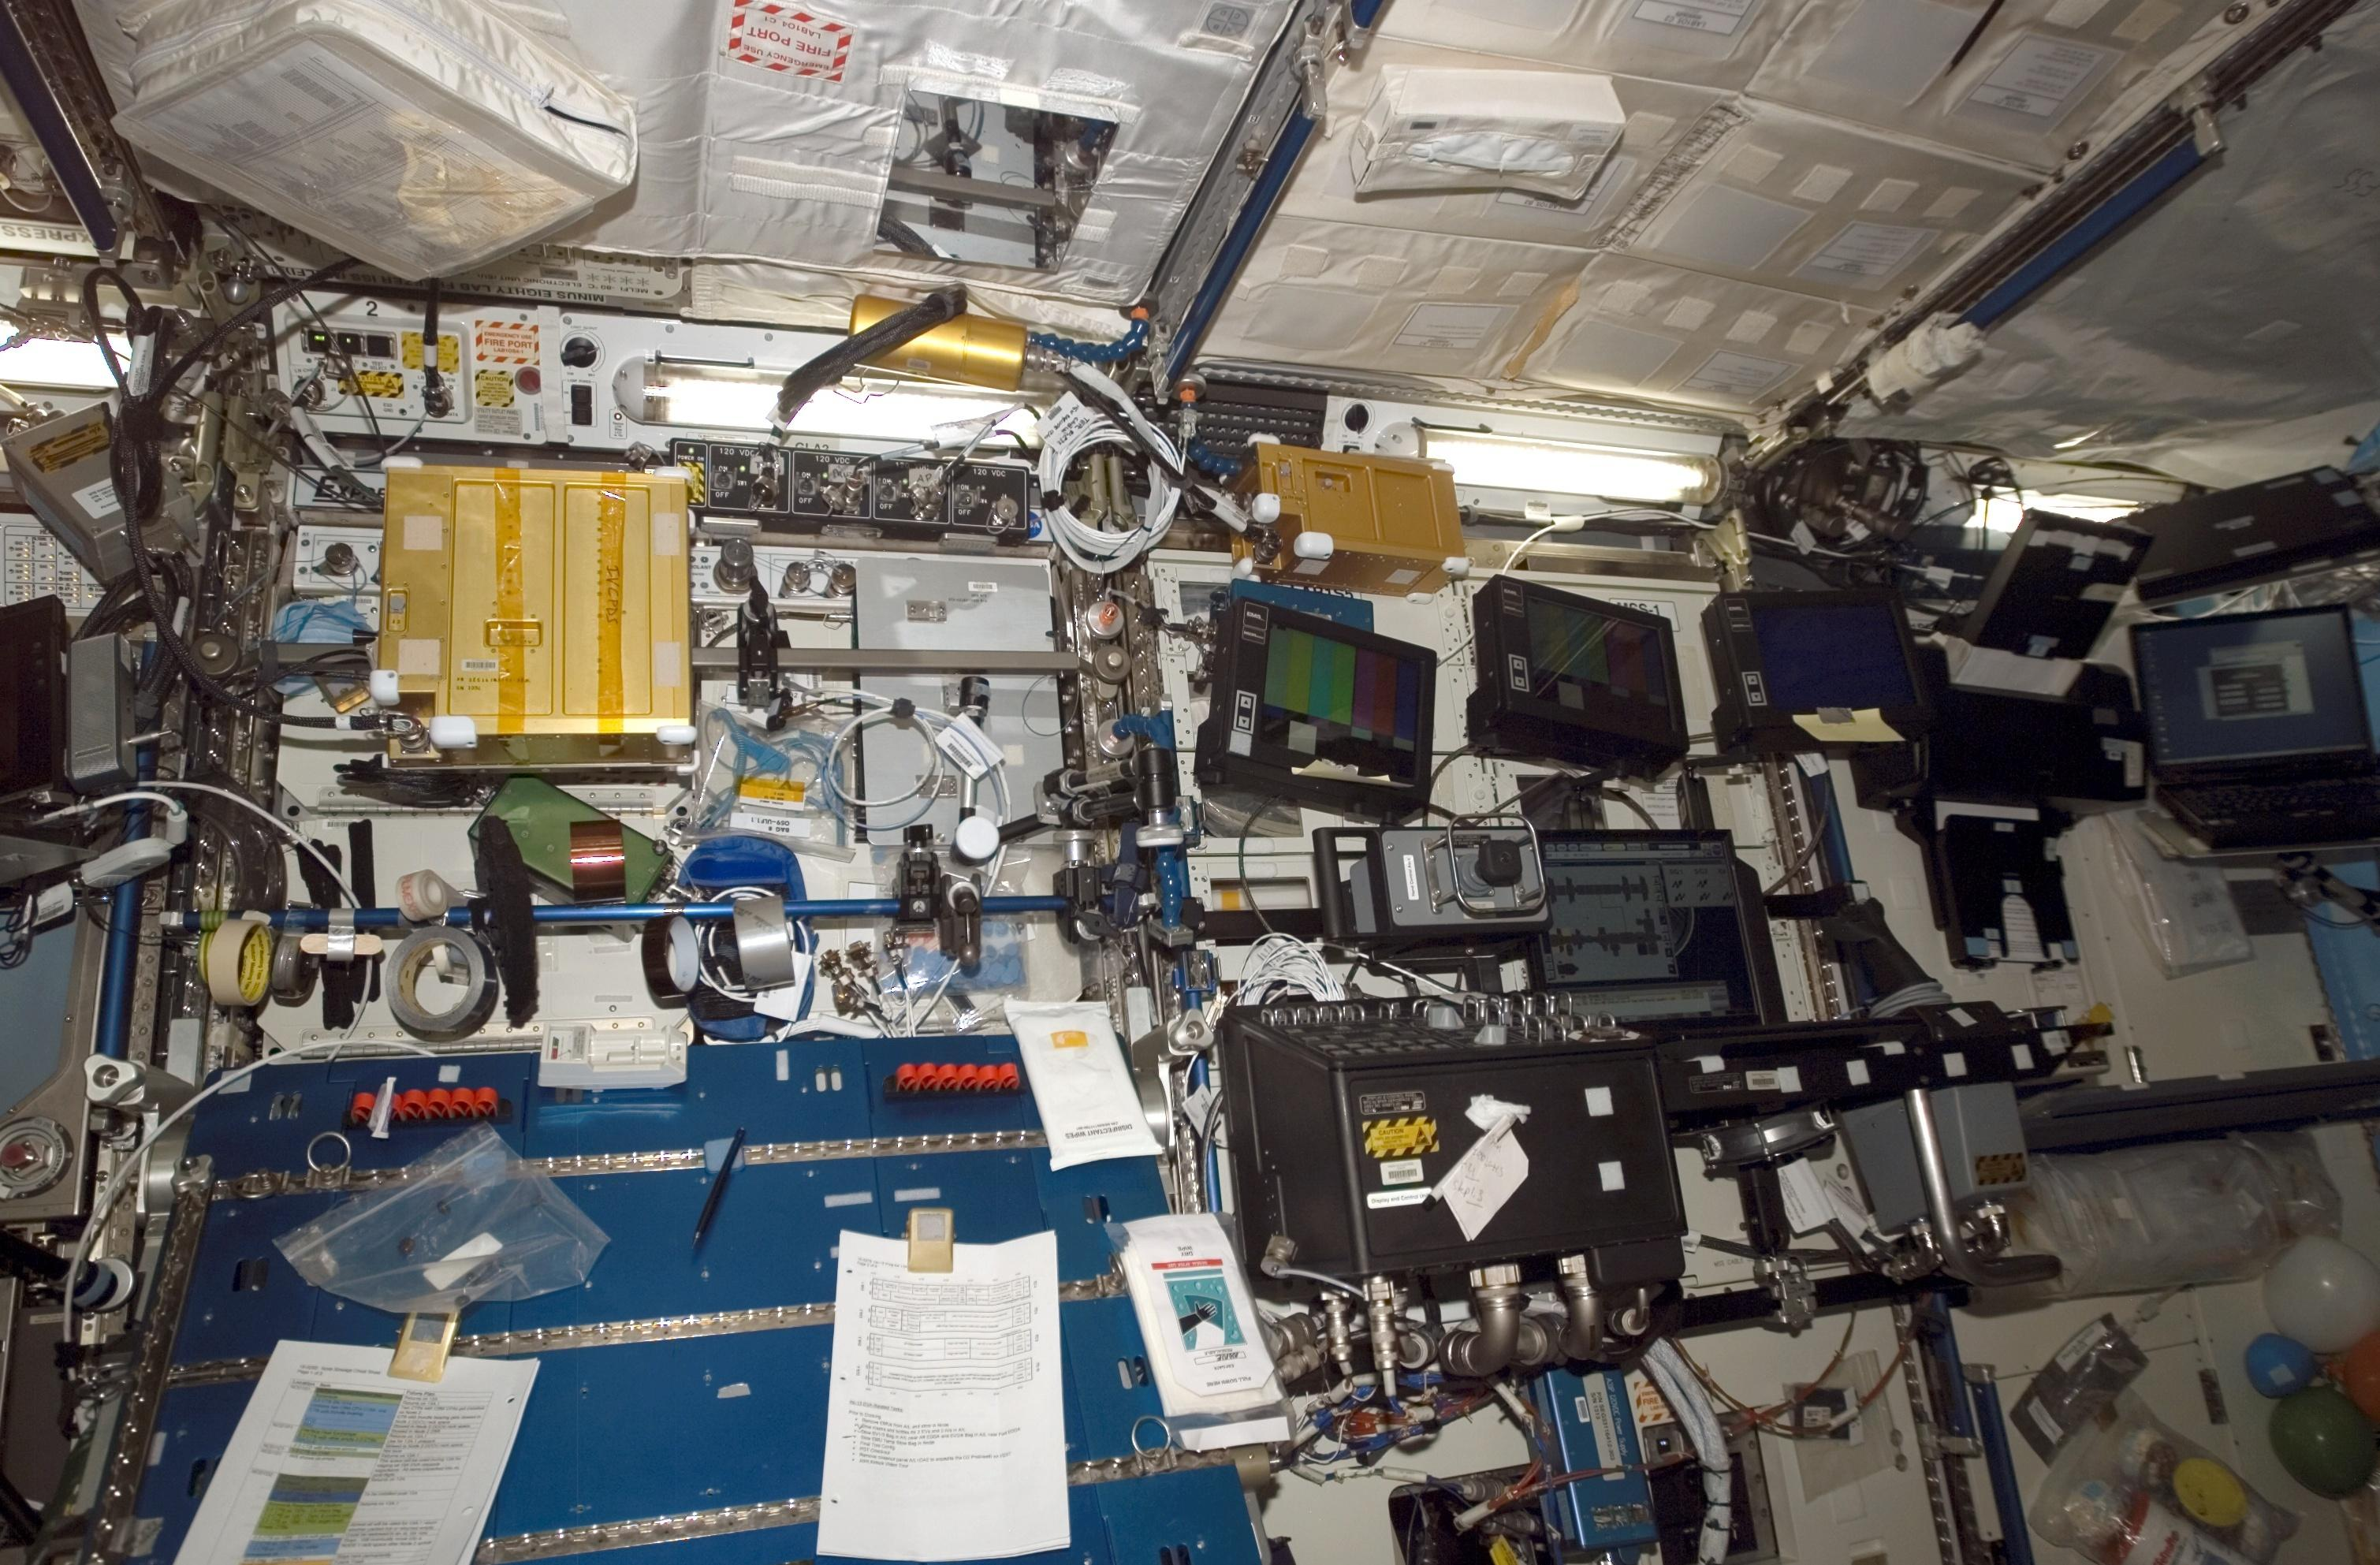 nasa space station inside - photo #2